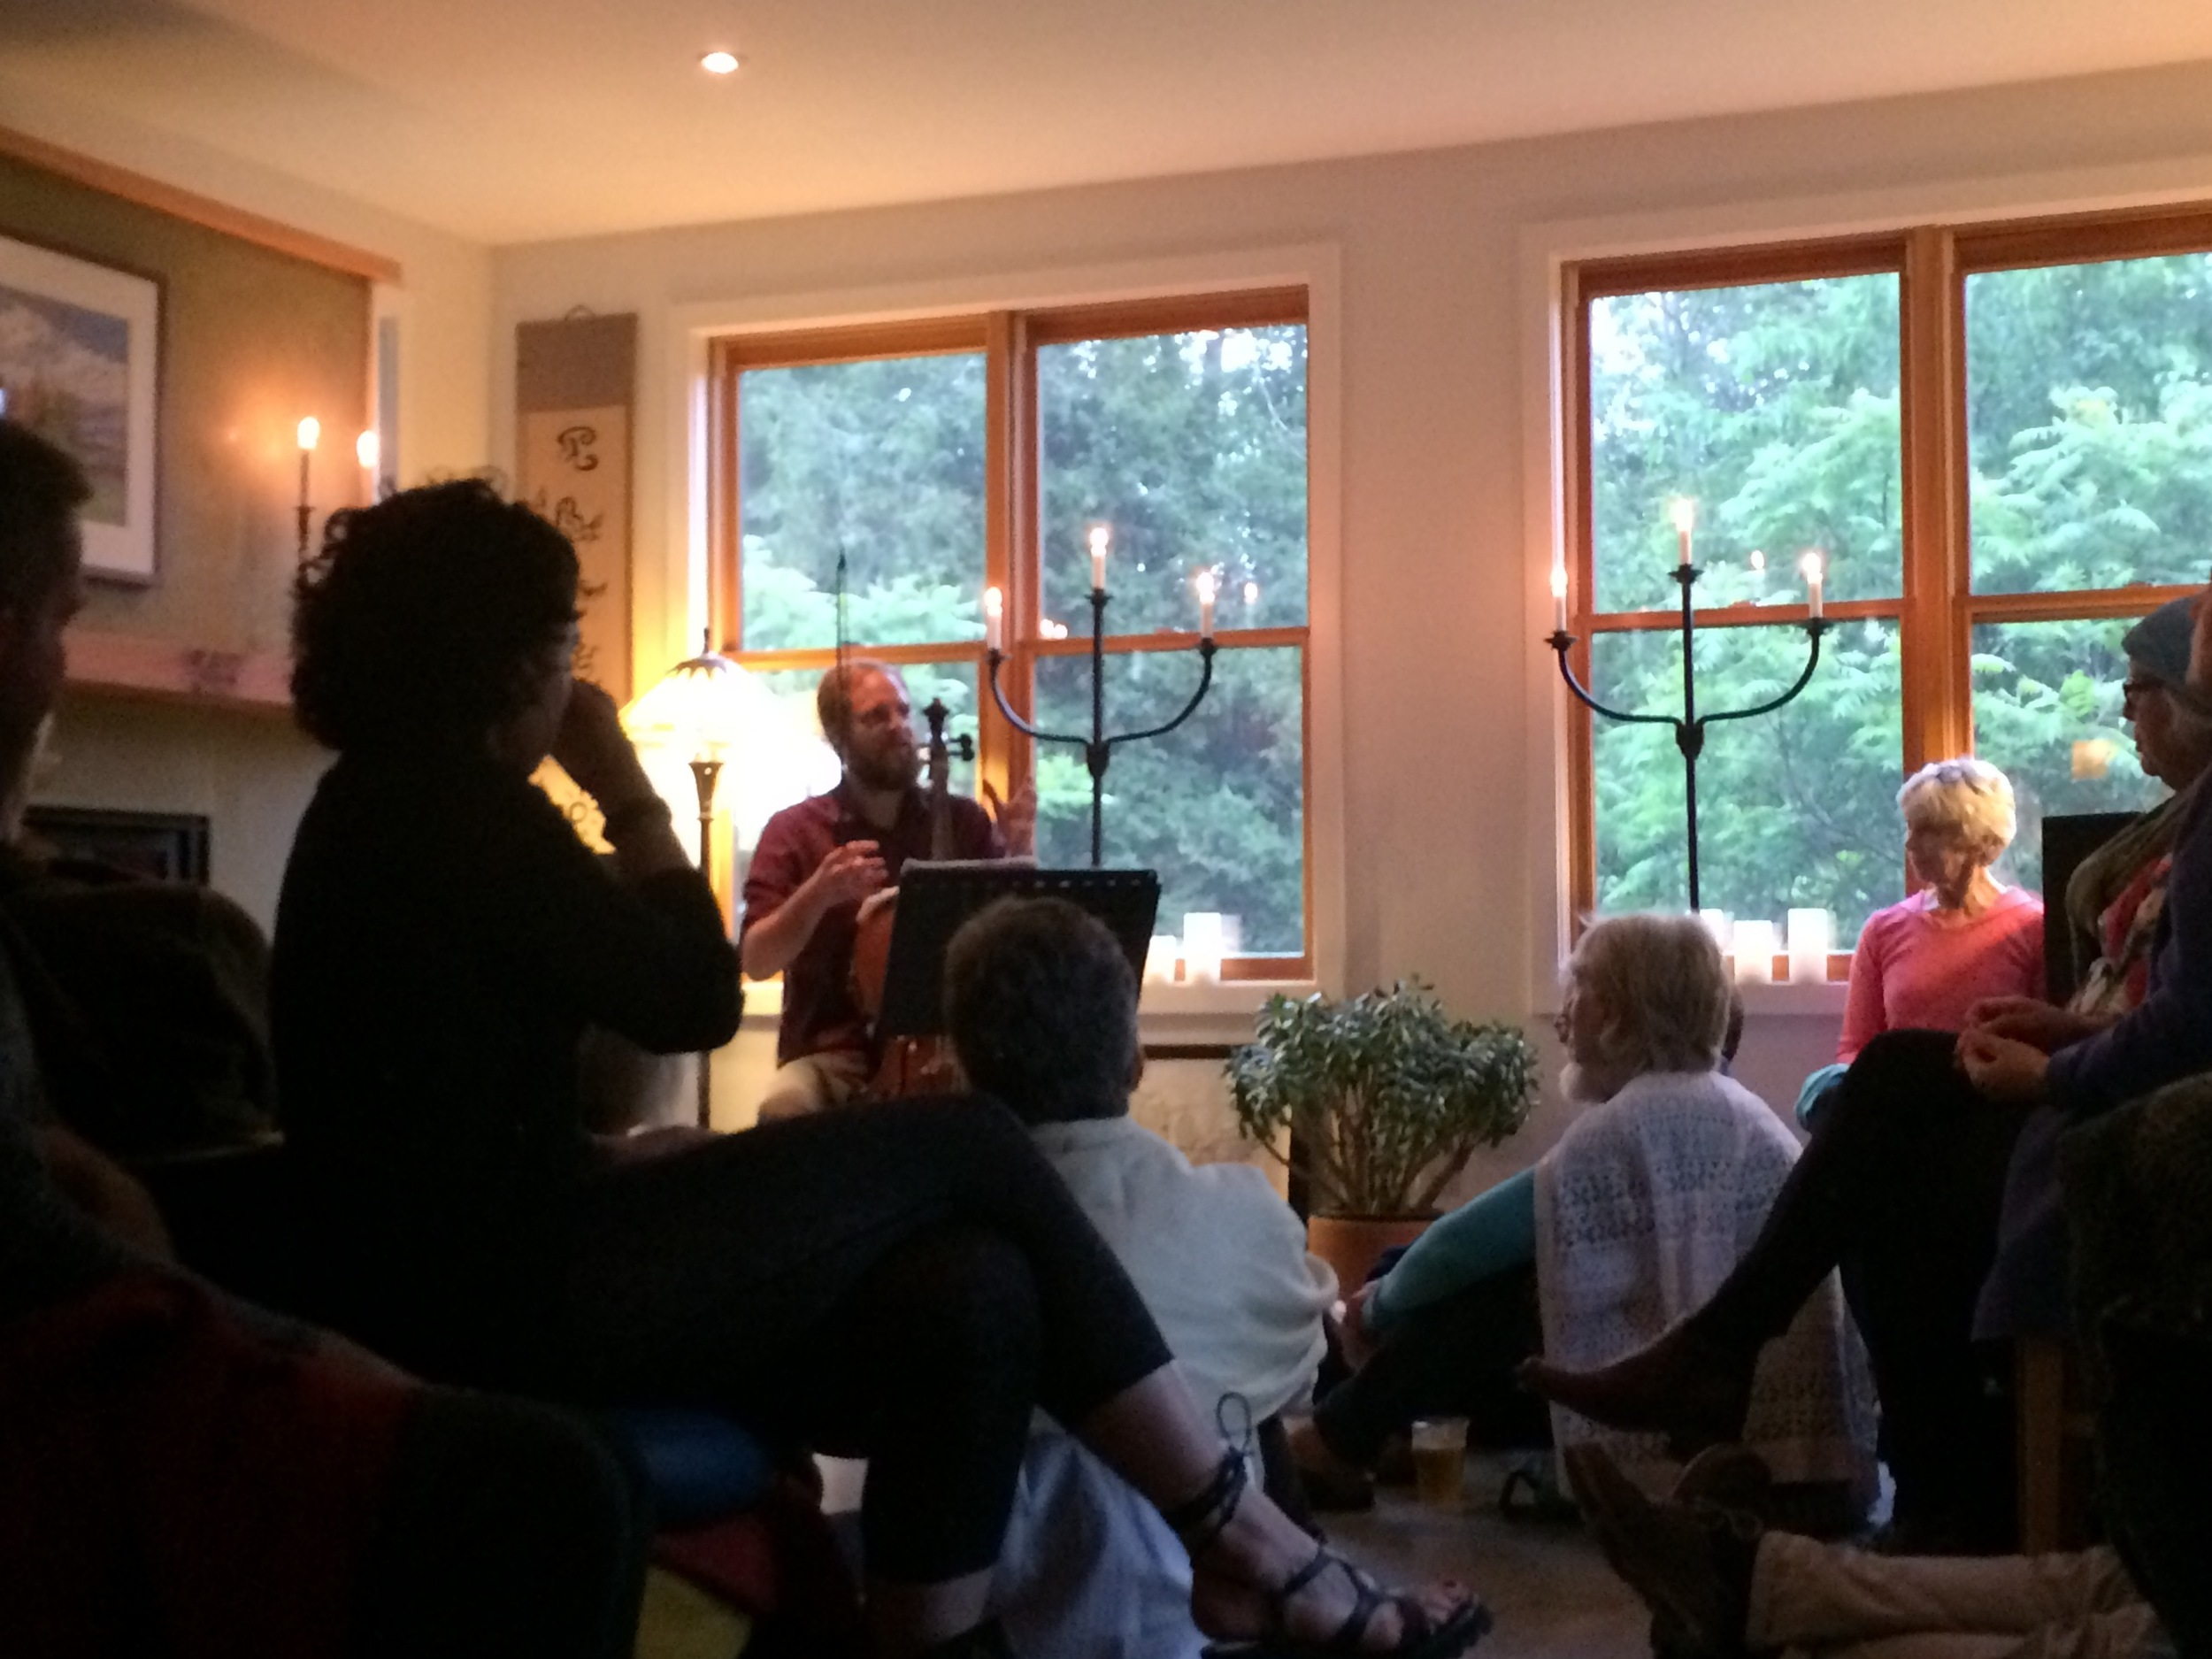 Our wonderful house concert in the Gatineau Hills with 70+ people